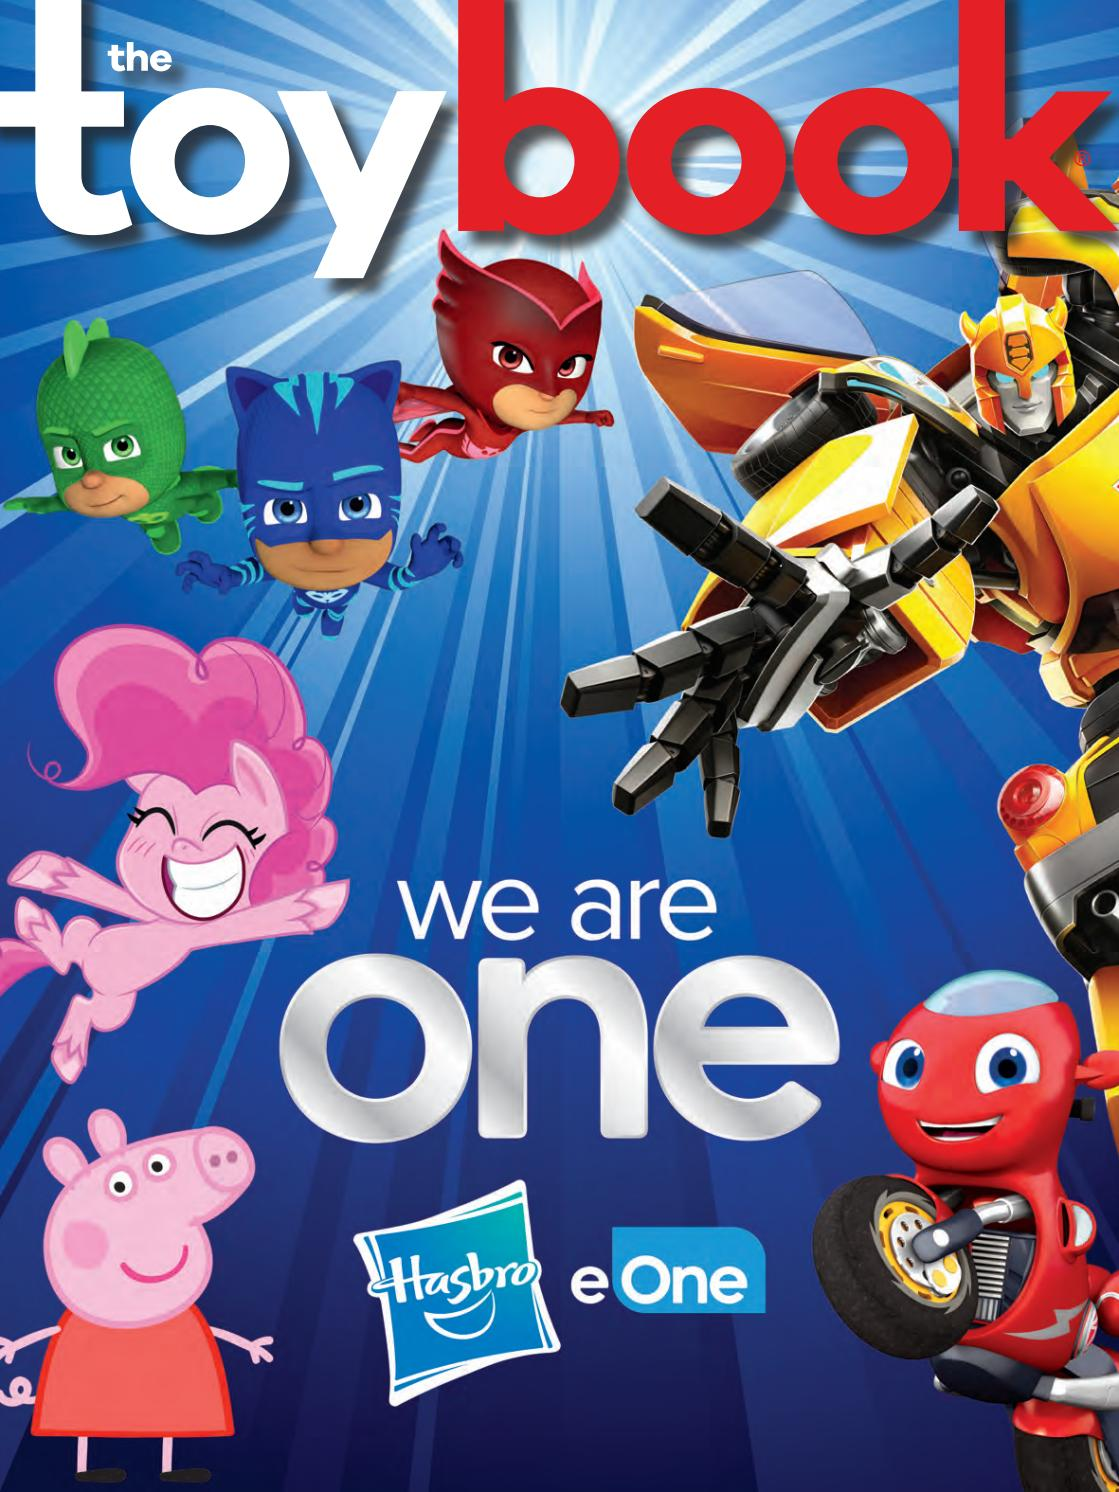 February 2020 By The Toy Book Issuu - roblox mega easy obby stage 262 billon